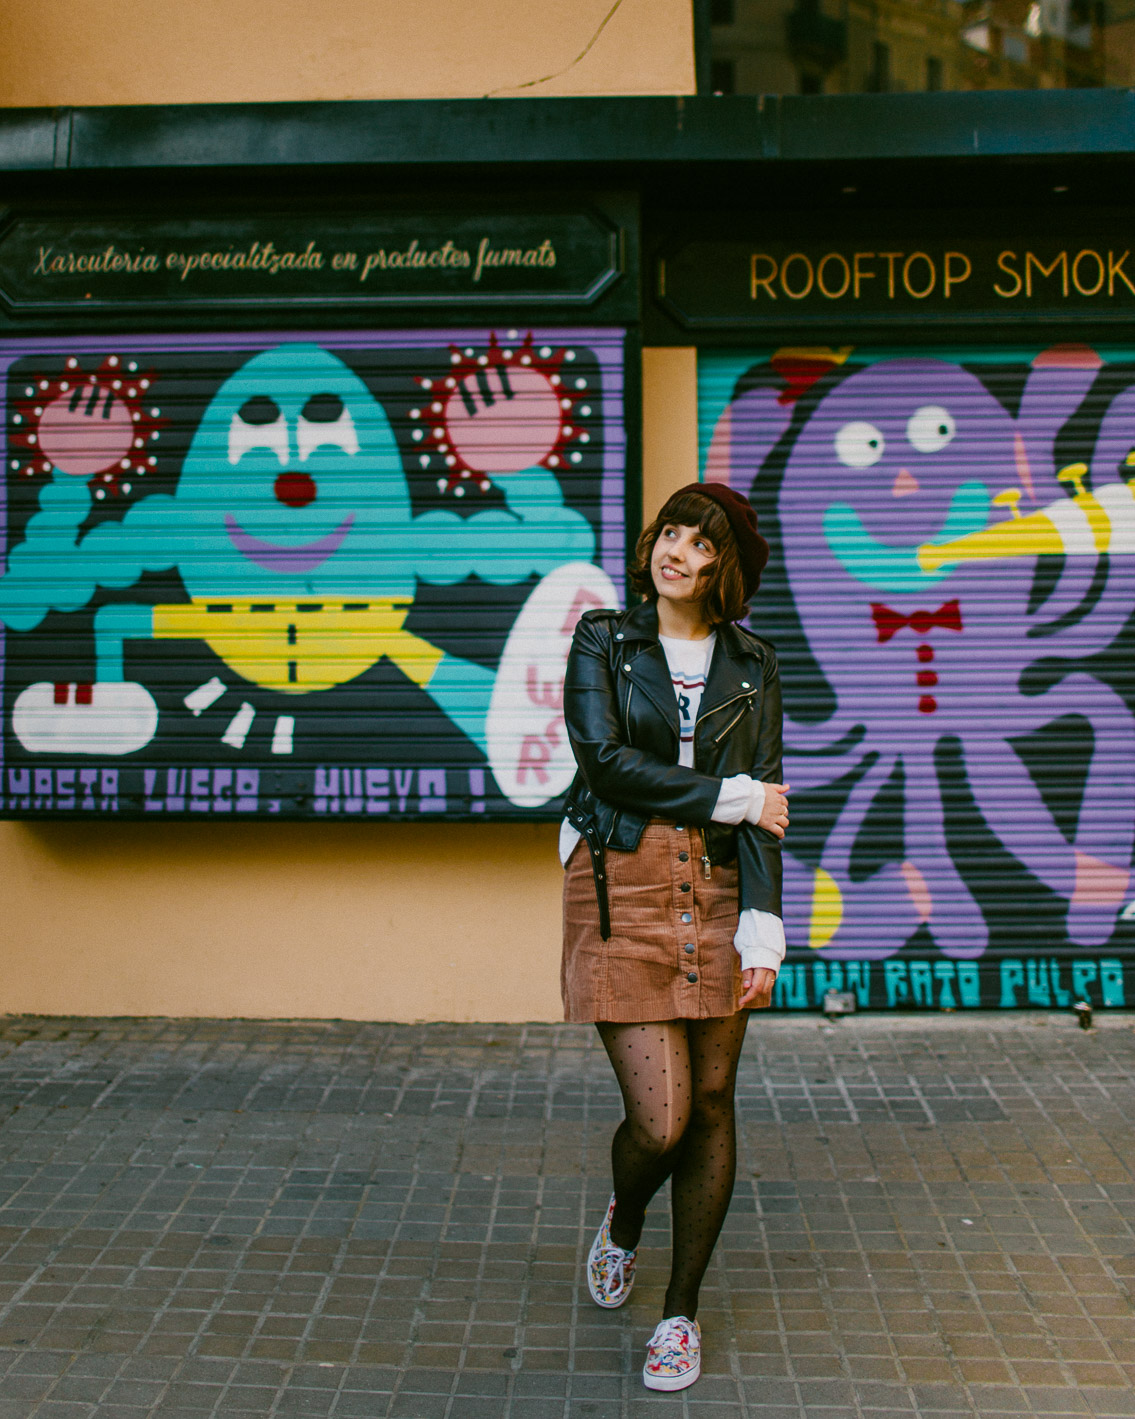 Girls t-shirt & Sant Antoni Rooftop Smokehouse wall-art - The cat, you and us